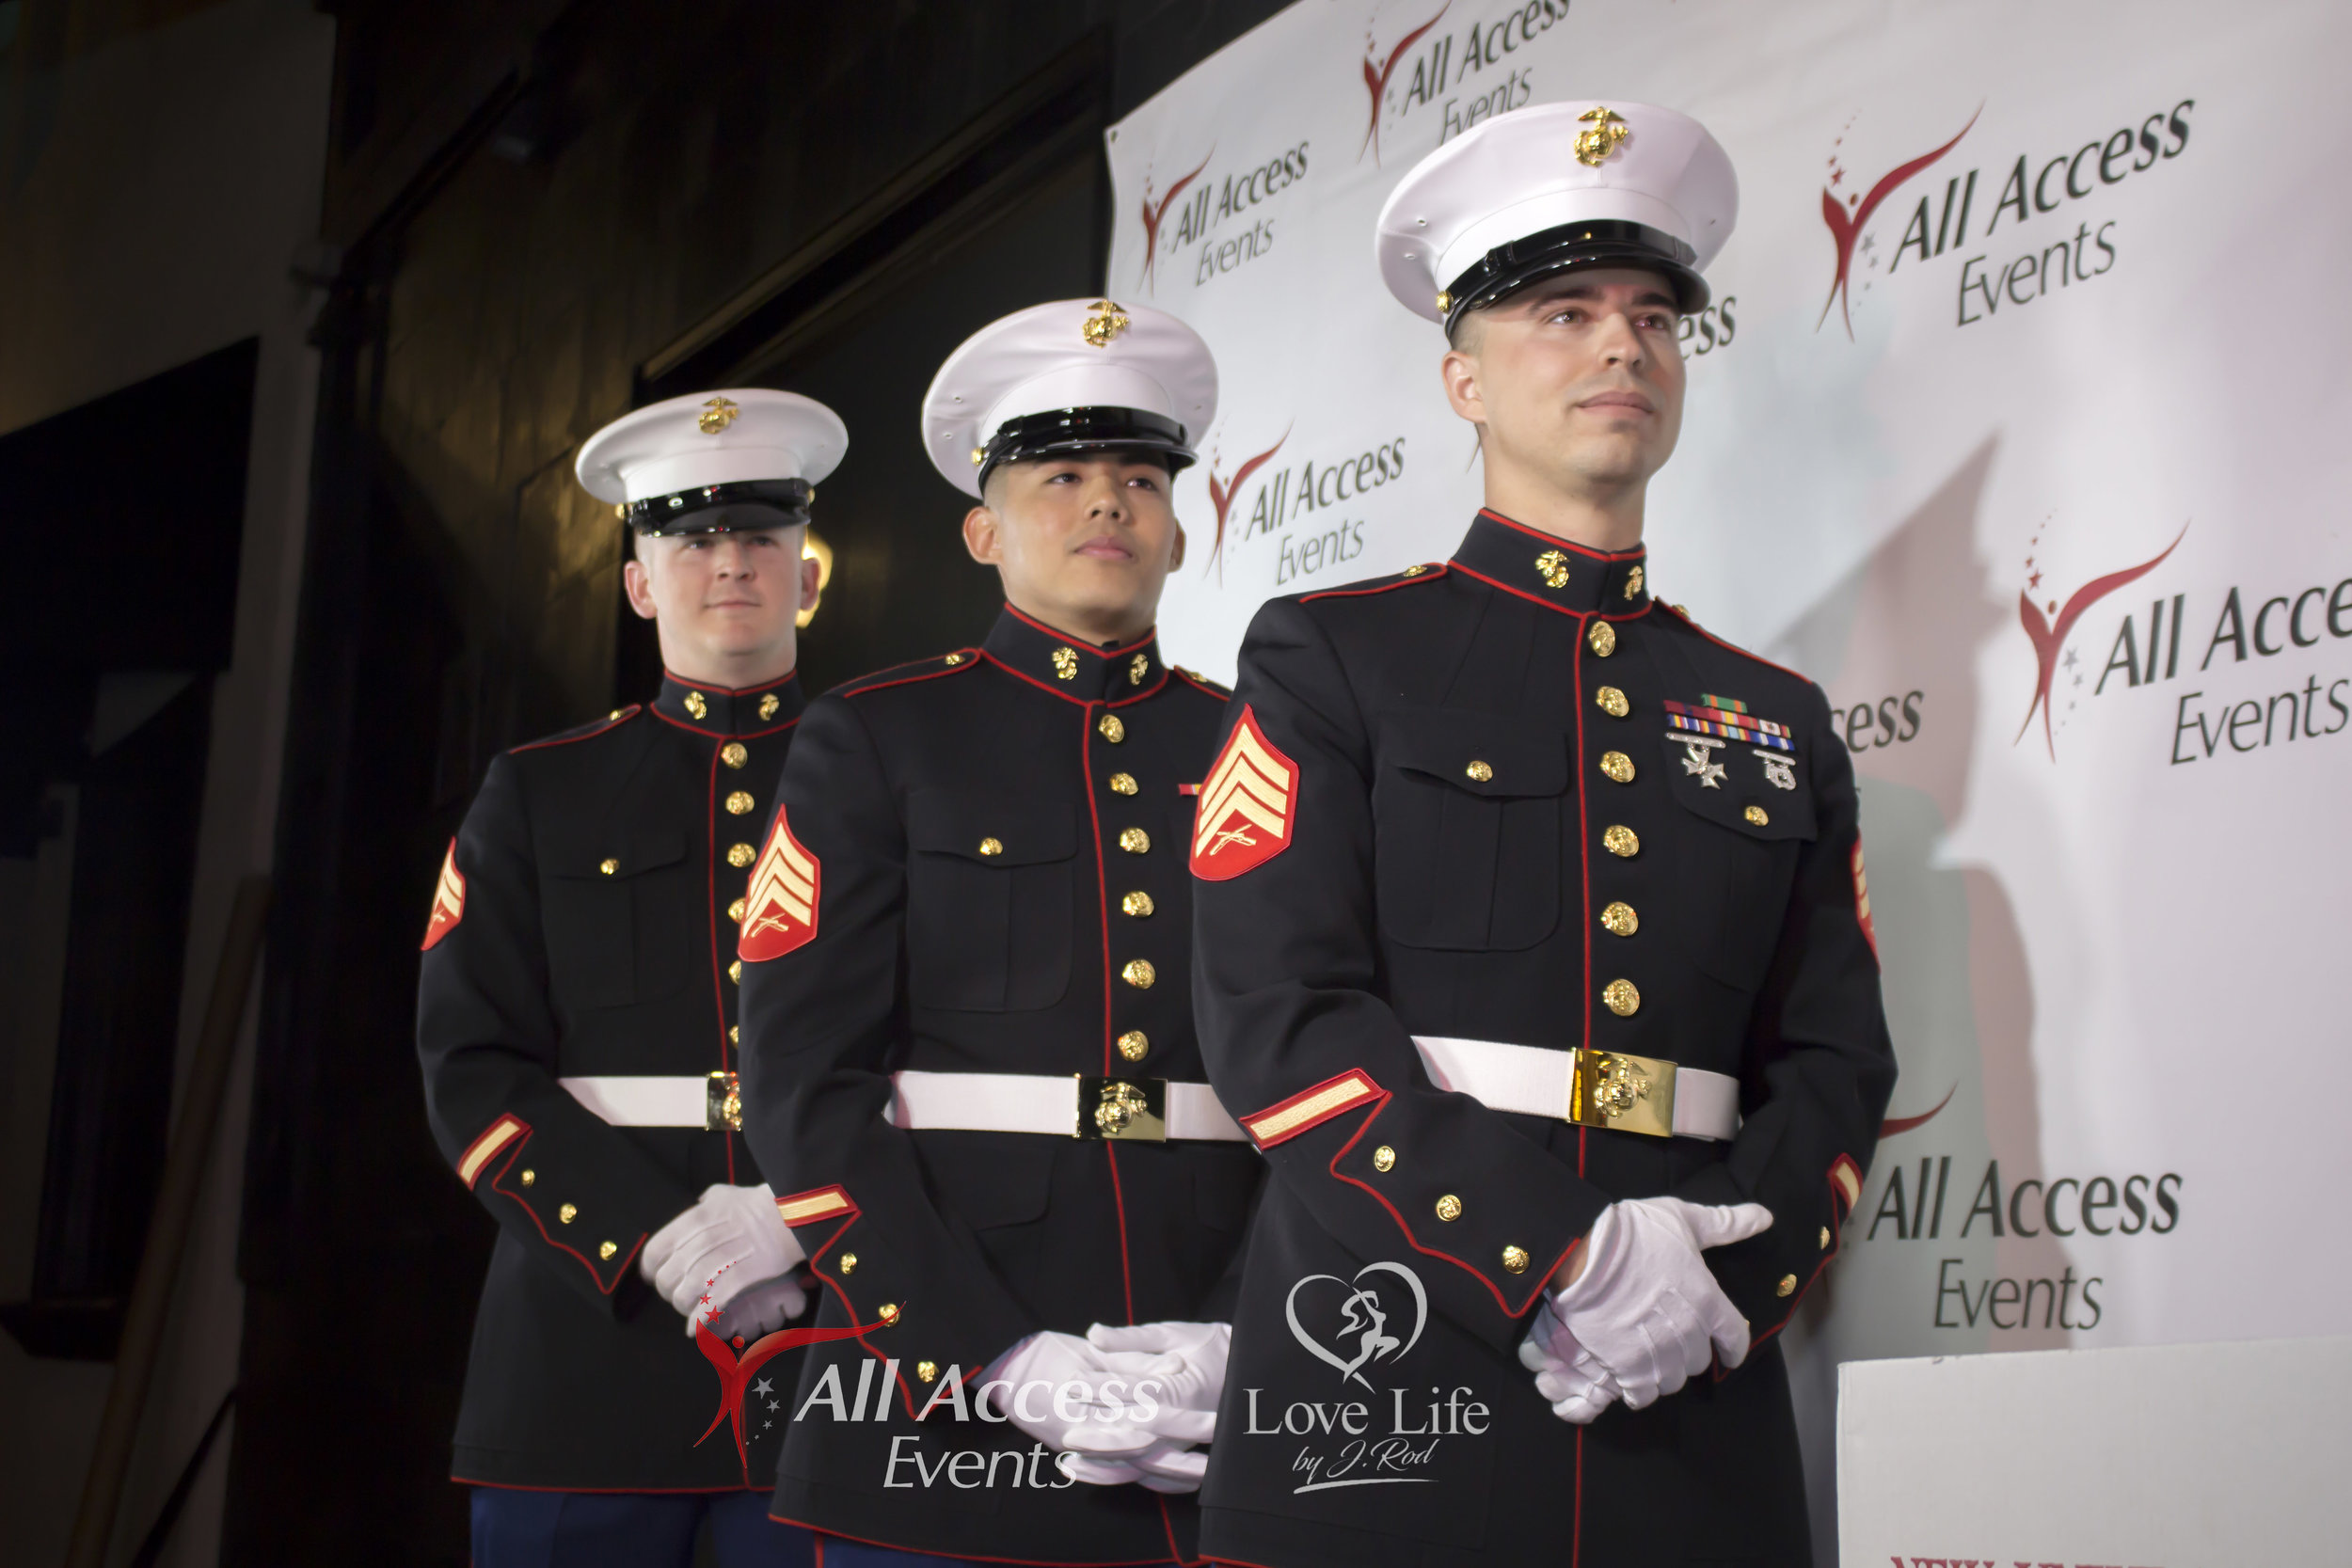 All Access Events Toy Drive - 12-13-17_147.jpg